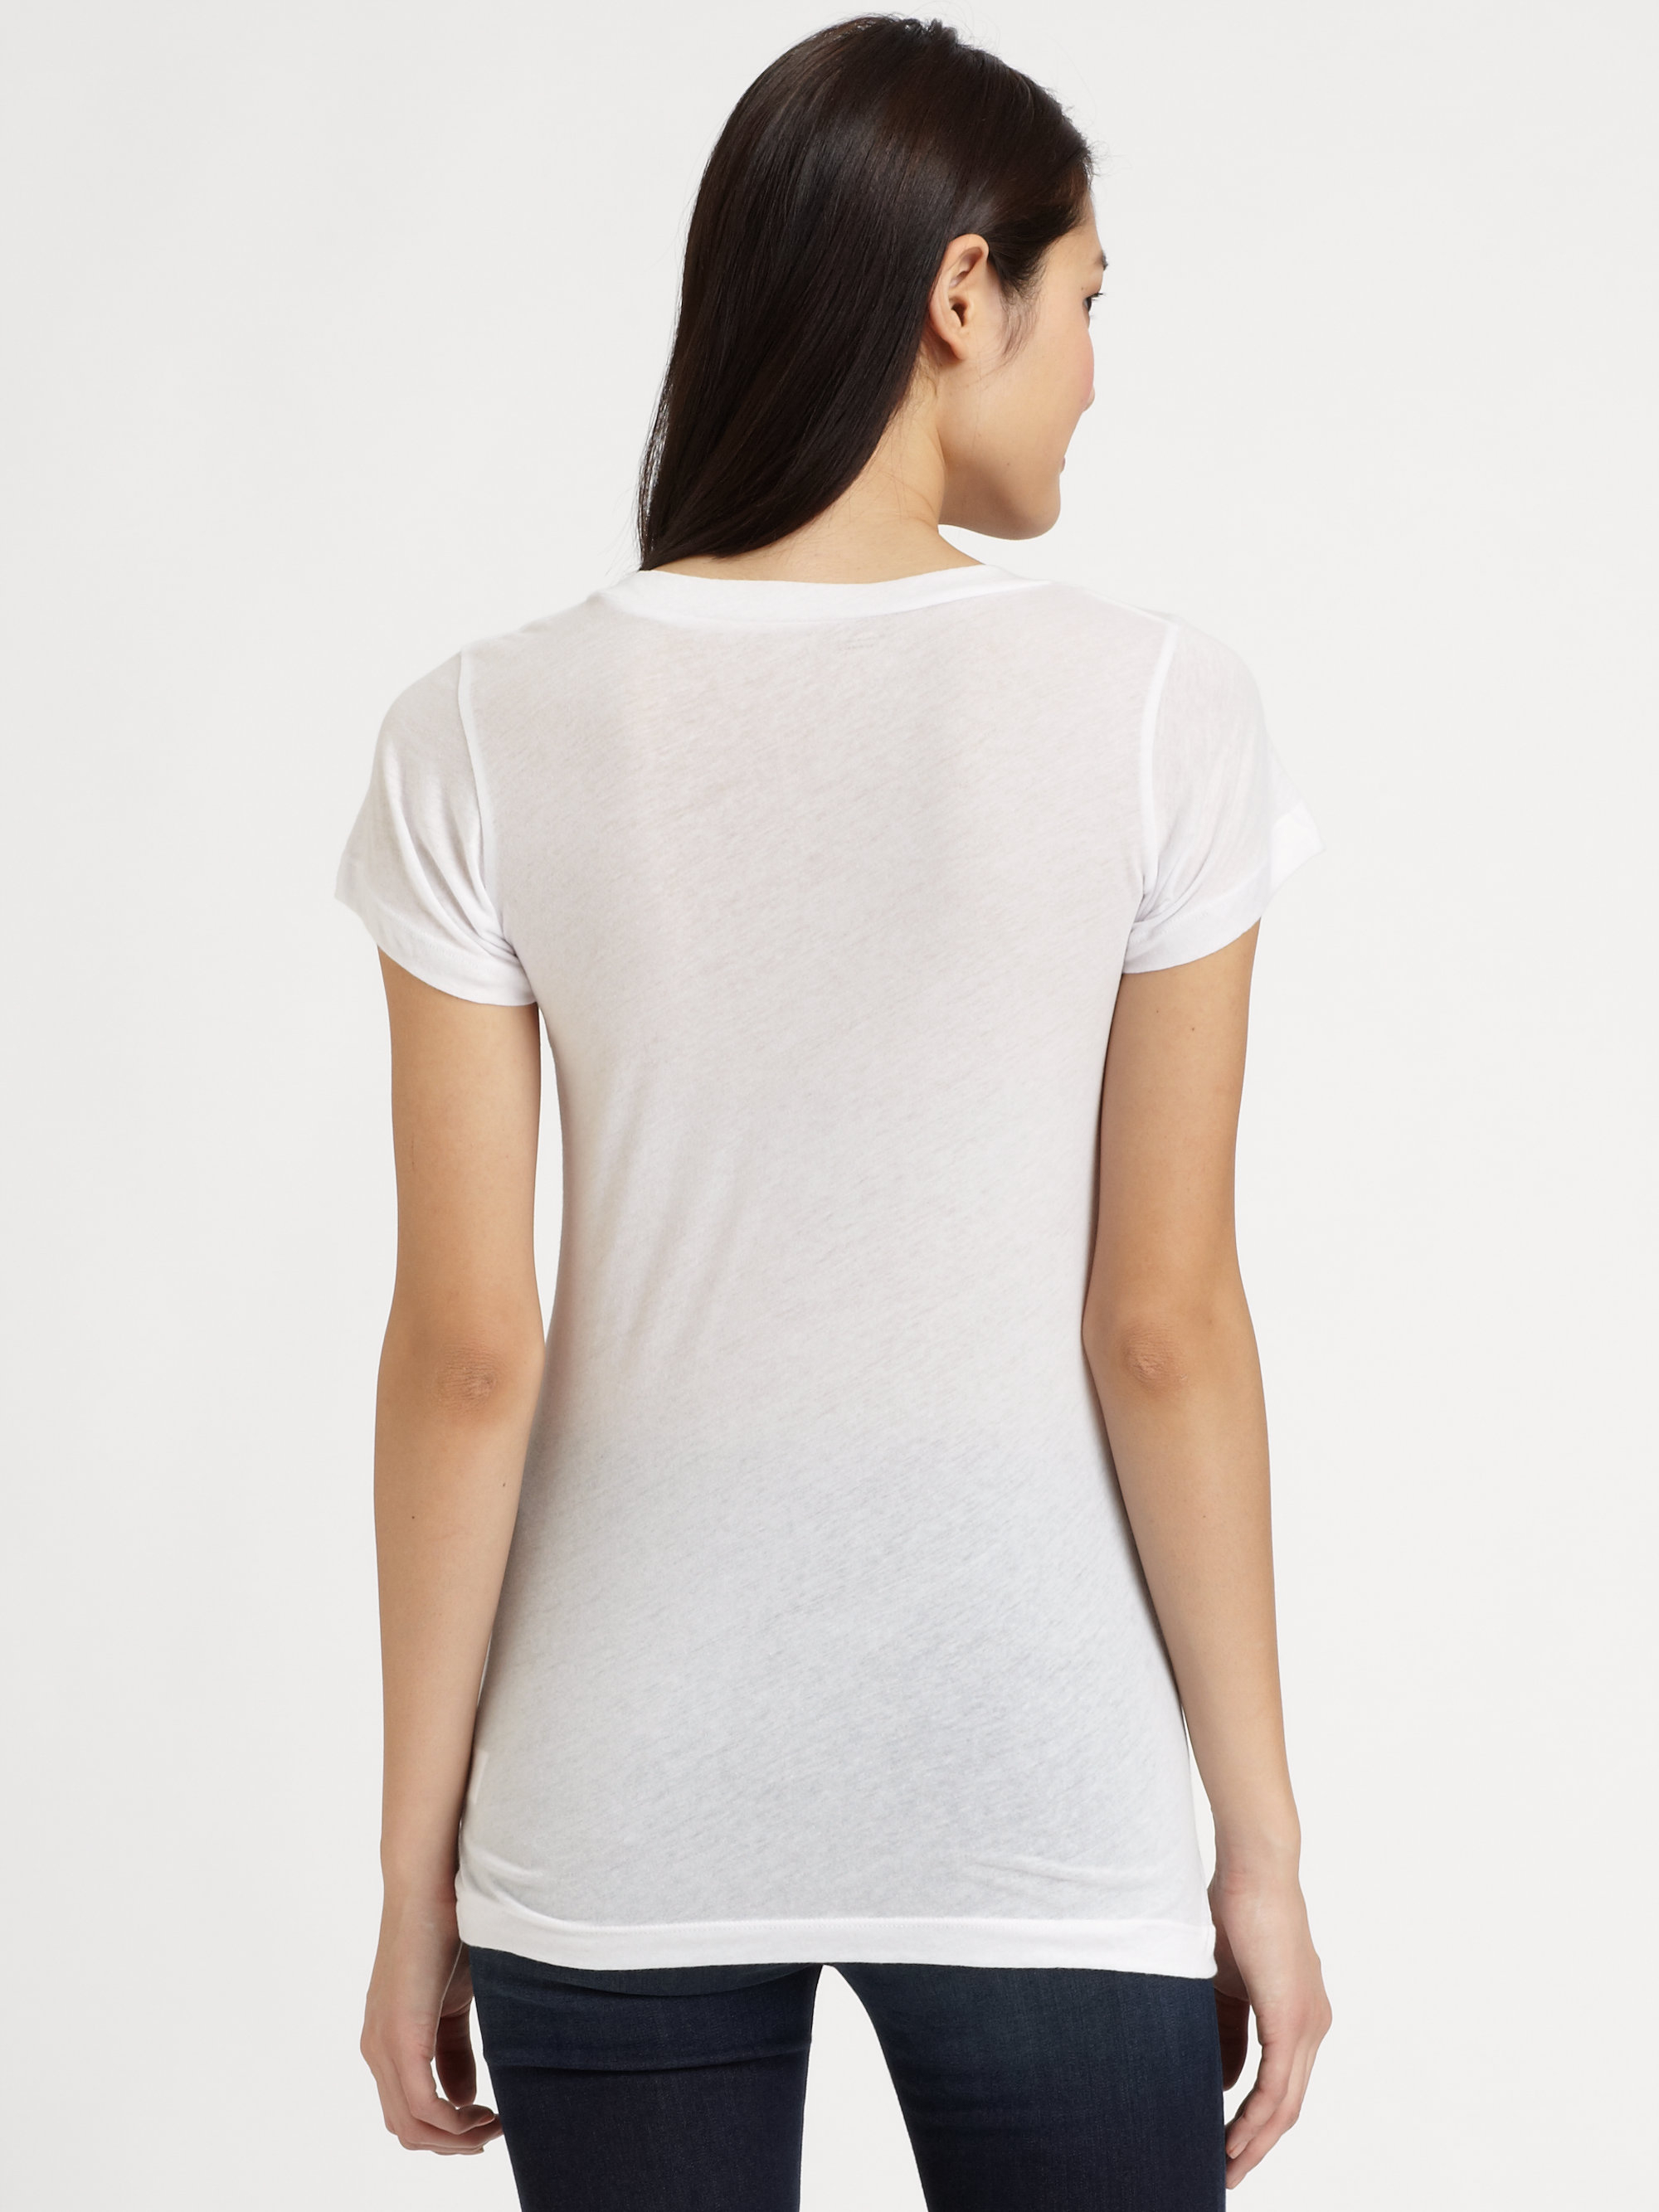 % Cotton T-shirts Wholesale, Blank Cotton Tees wholesale, blank % Tee-shirts distributor, cotton crewneck supplier.